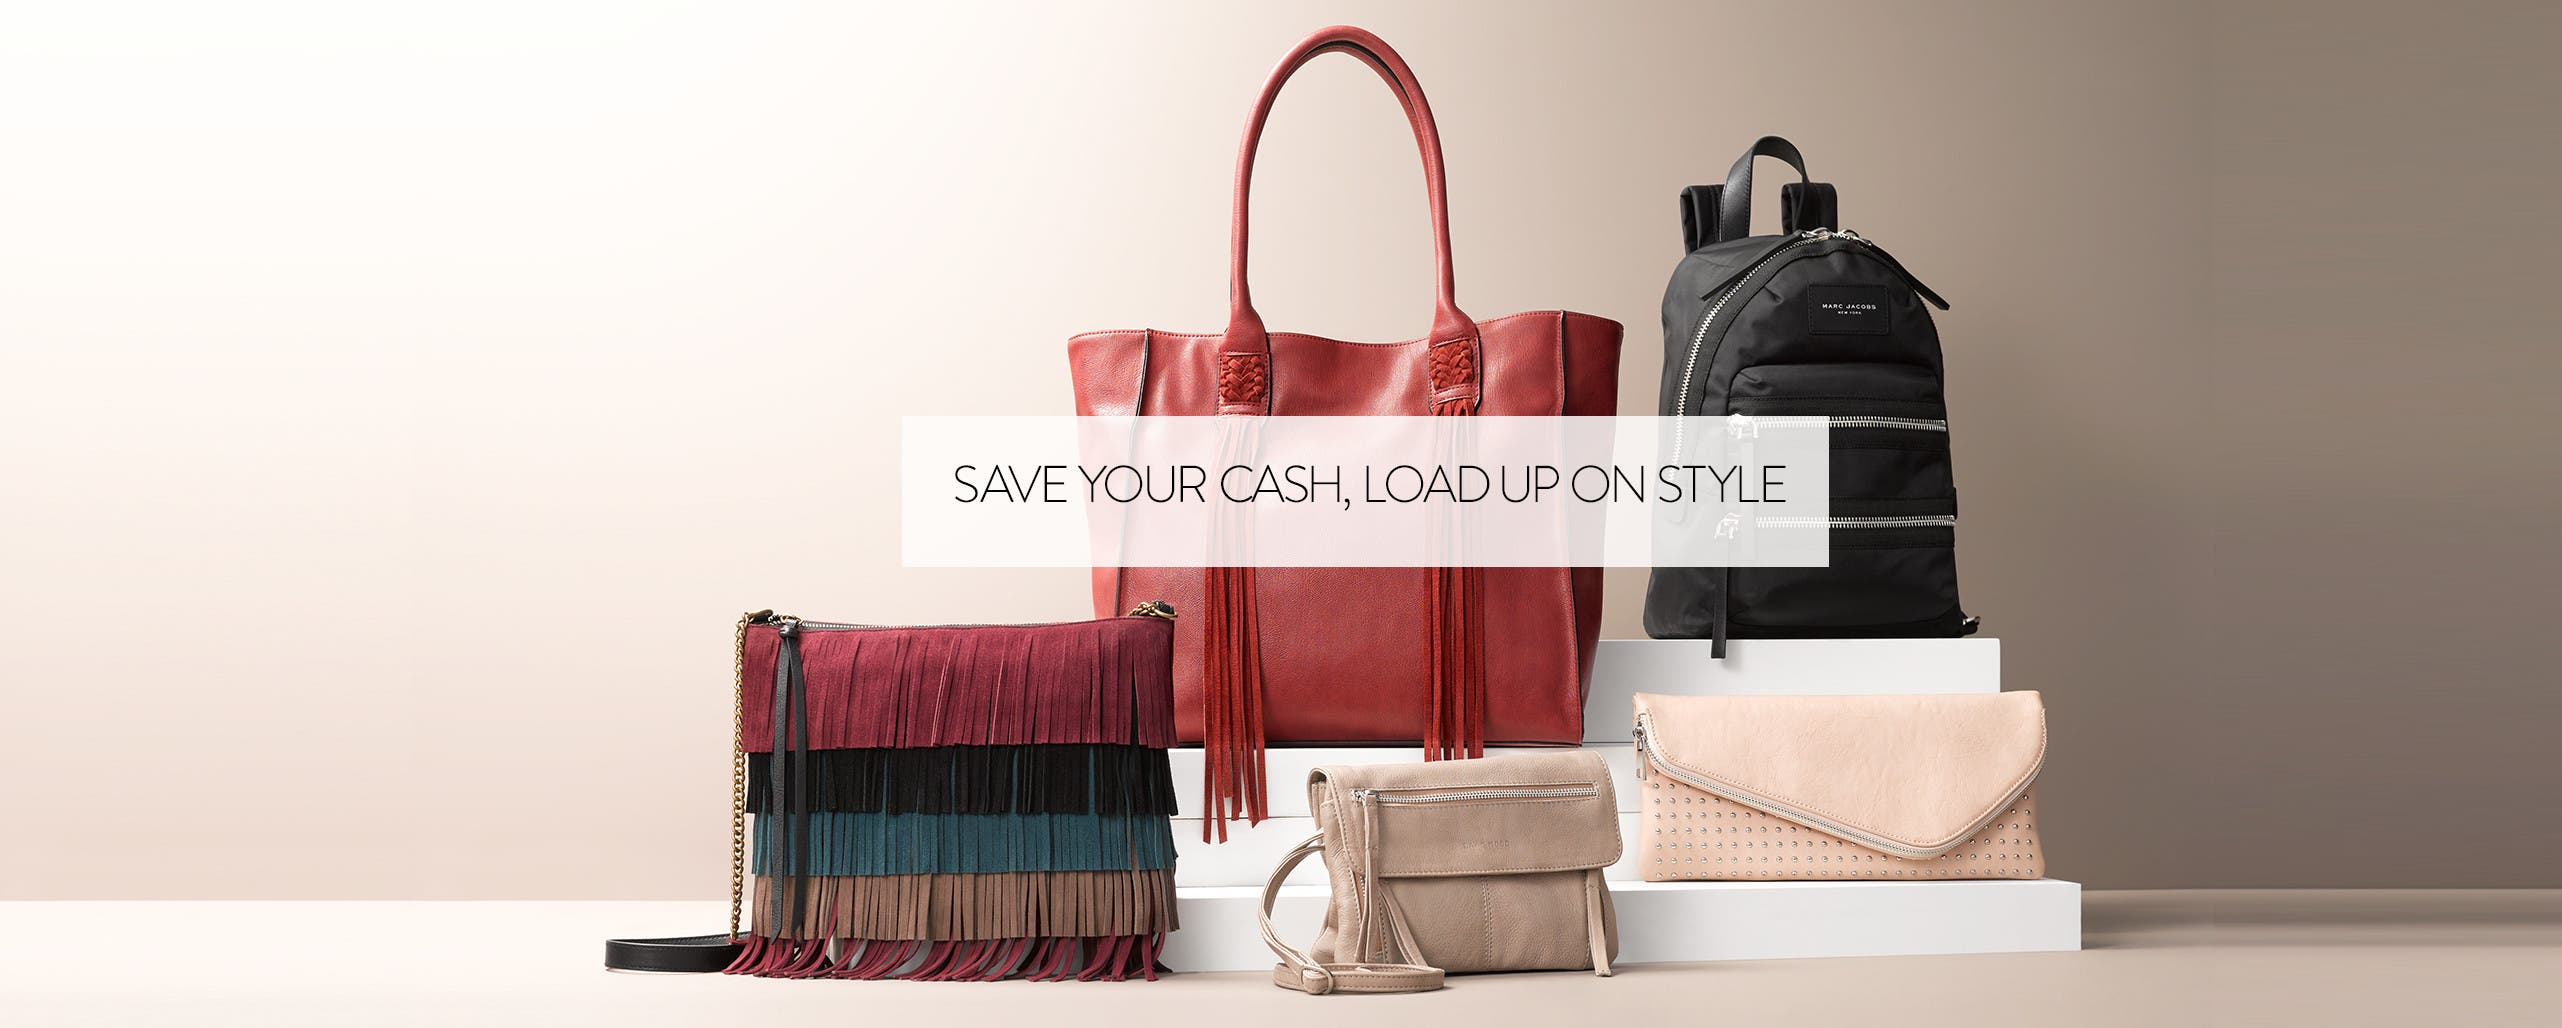 Save your cash, load up on style.